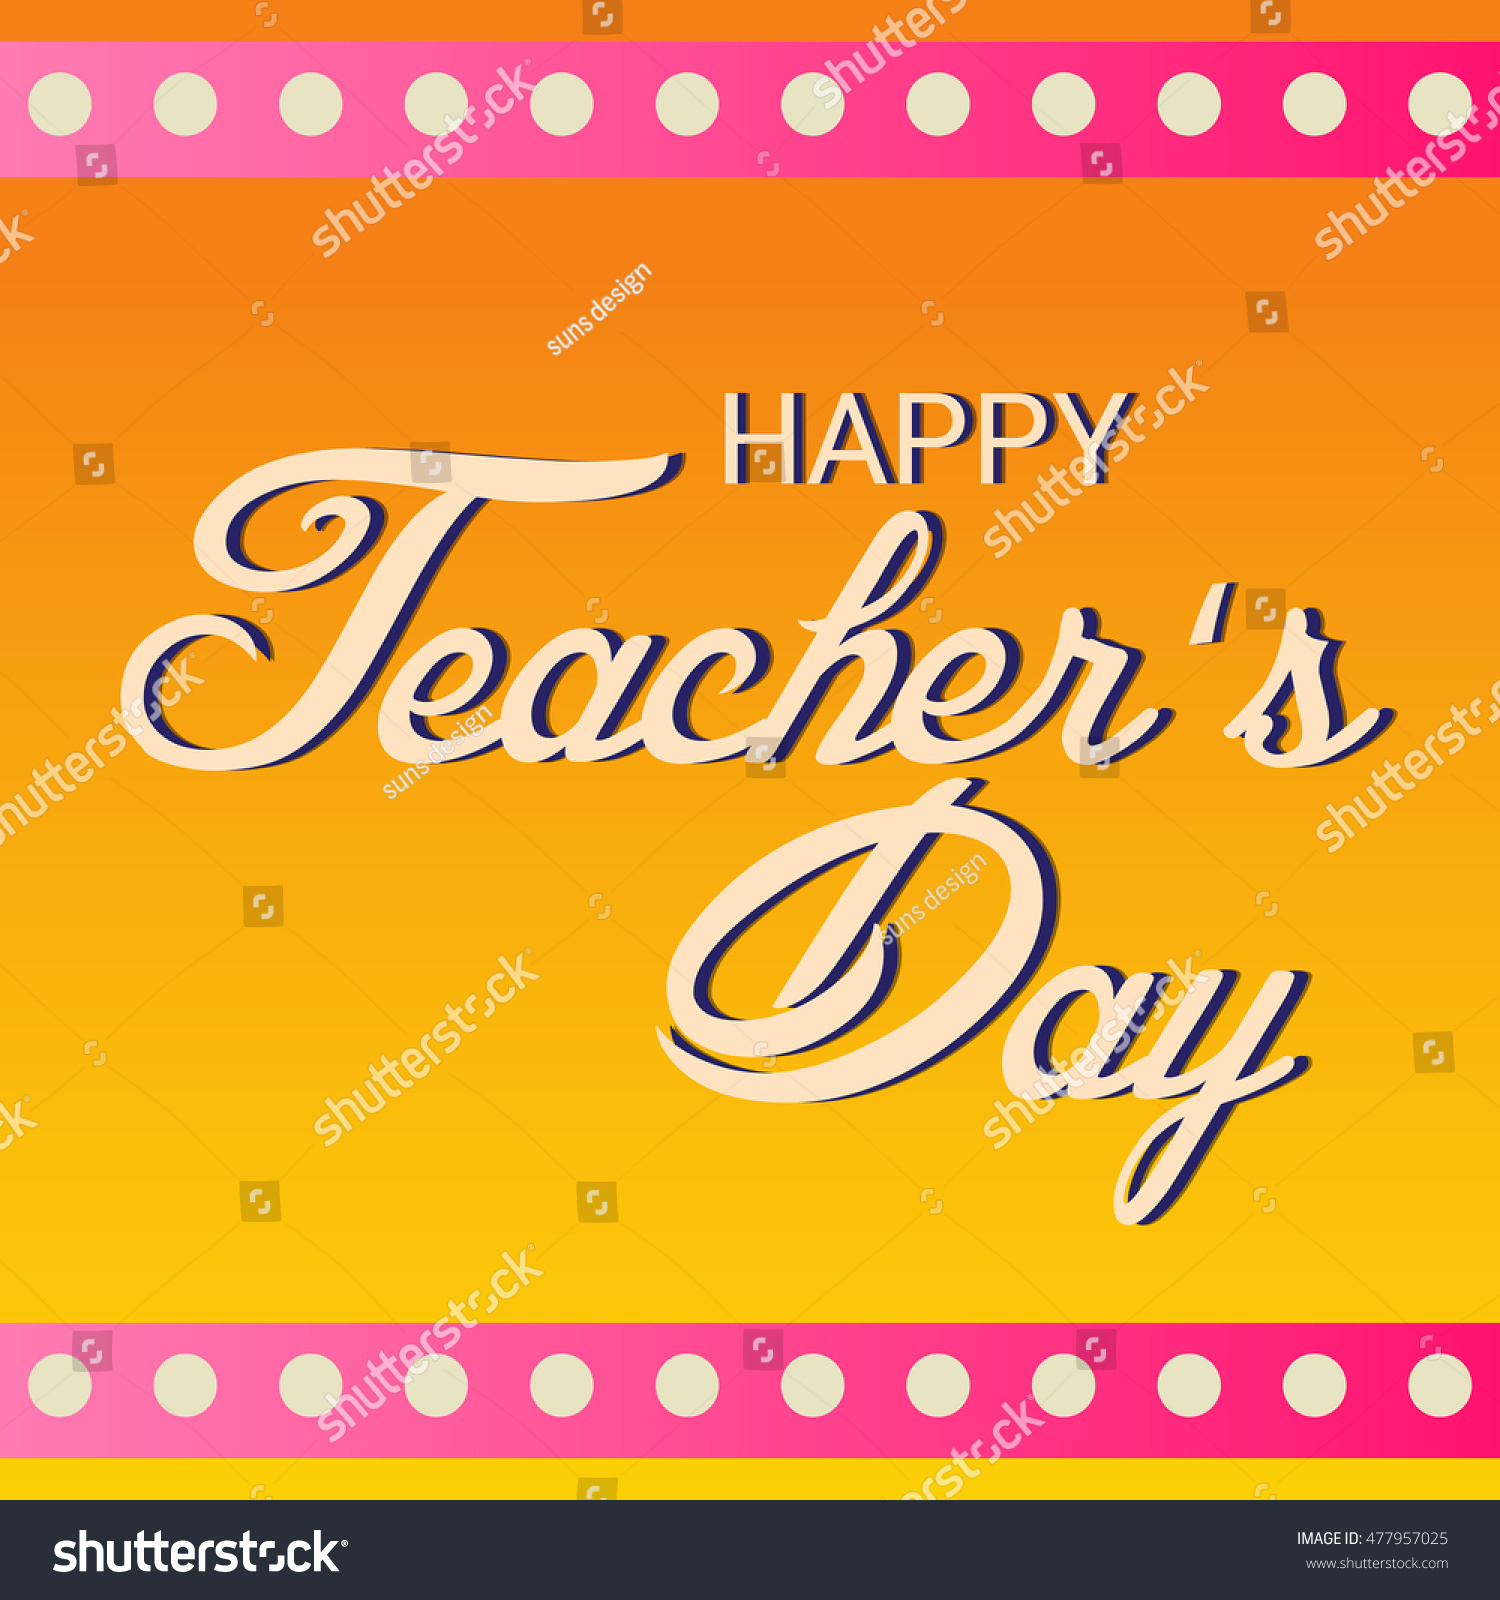 Vector illustration greeting card teachers day stock vector vector illustration of a greeting card of teachers day celebration kristyandbryce Image collections